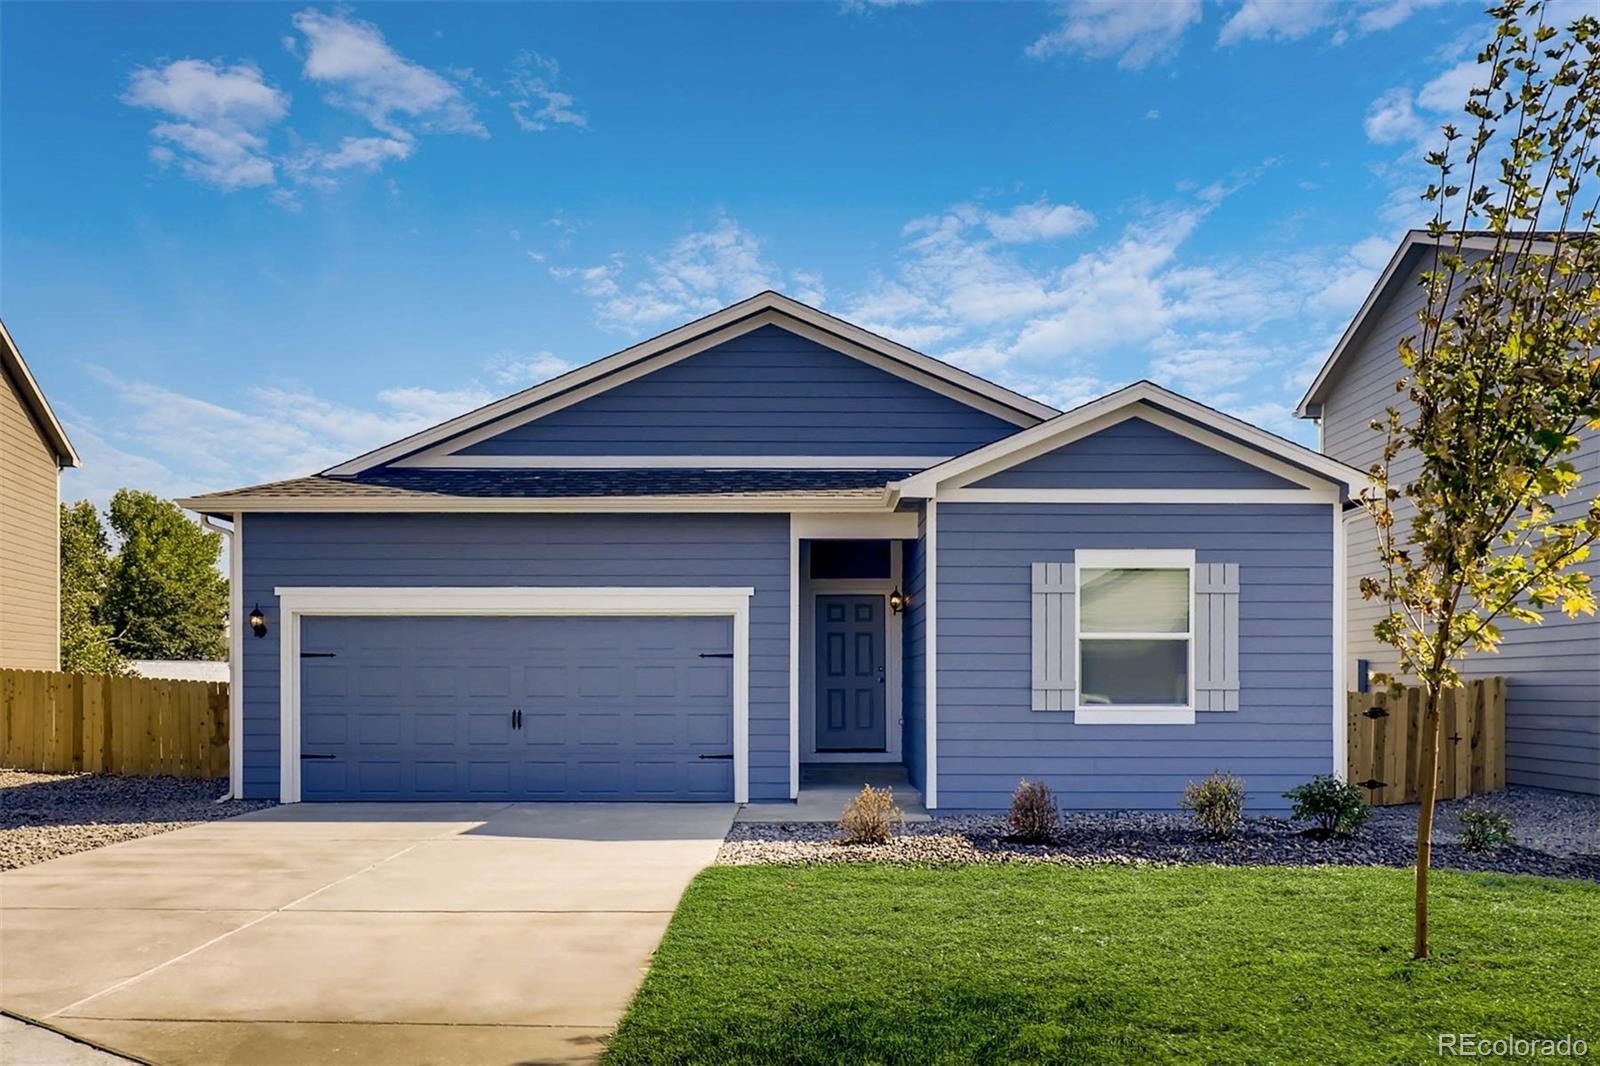 MLS# 1889055 - 1 - 409 Thomas Avenue, Keenesburg, CO 80643